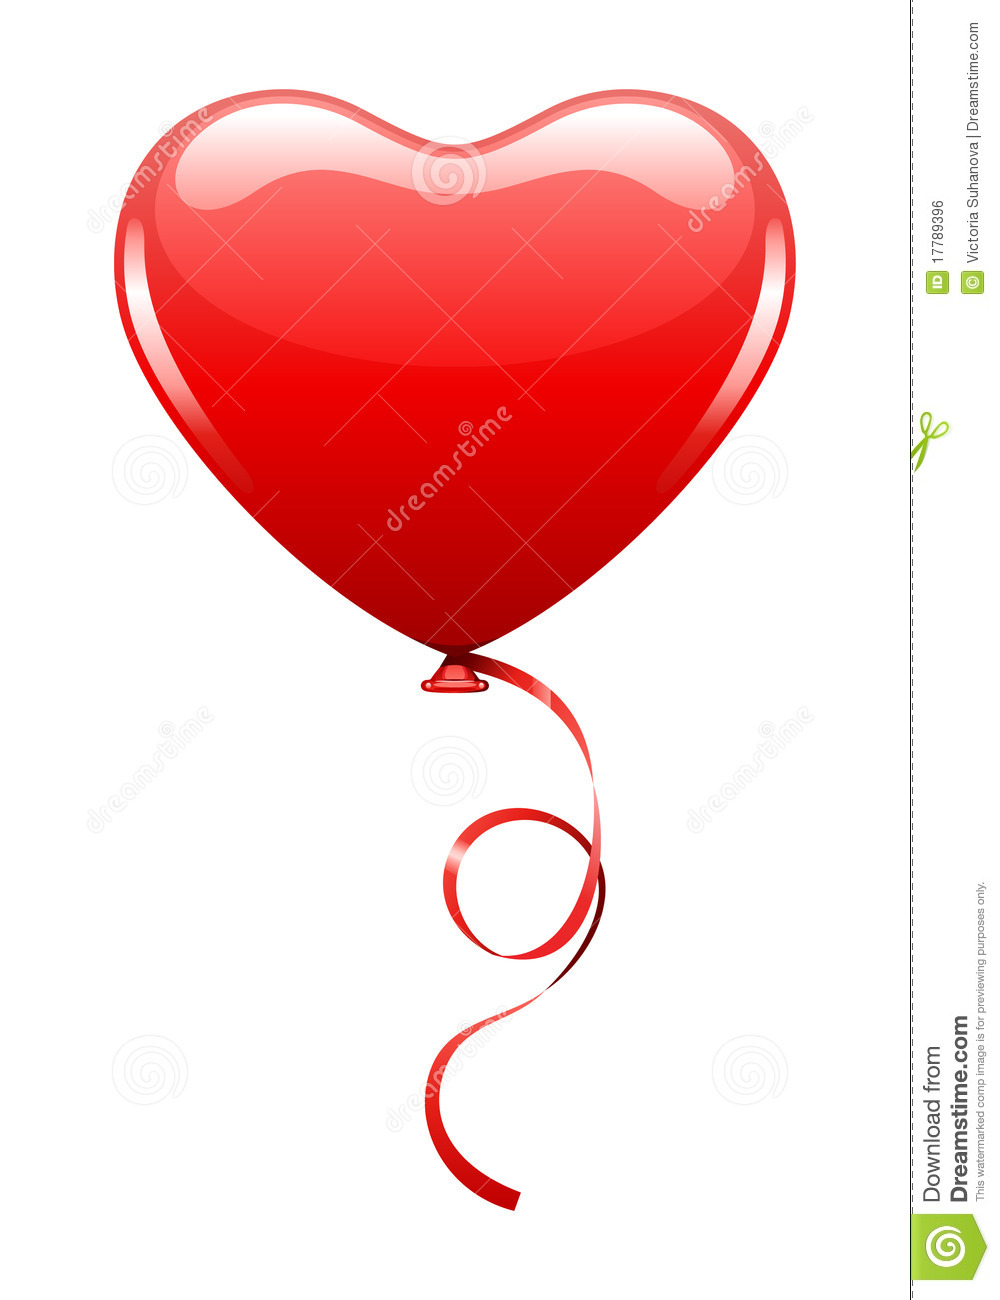 Heart As Air Balloon With Ribbon Royalty Free Stock Image